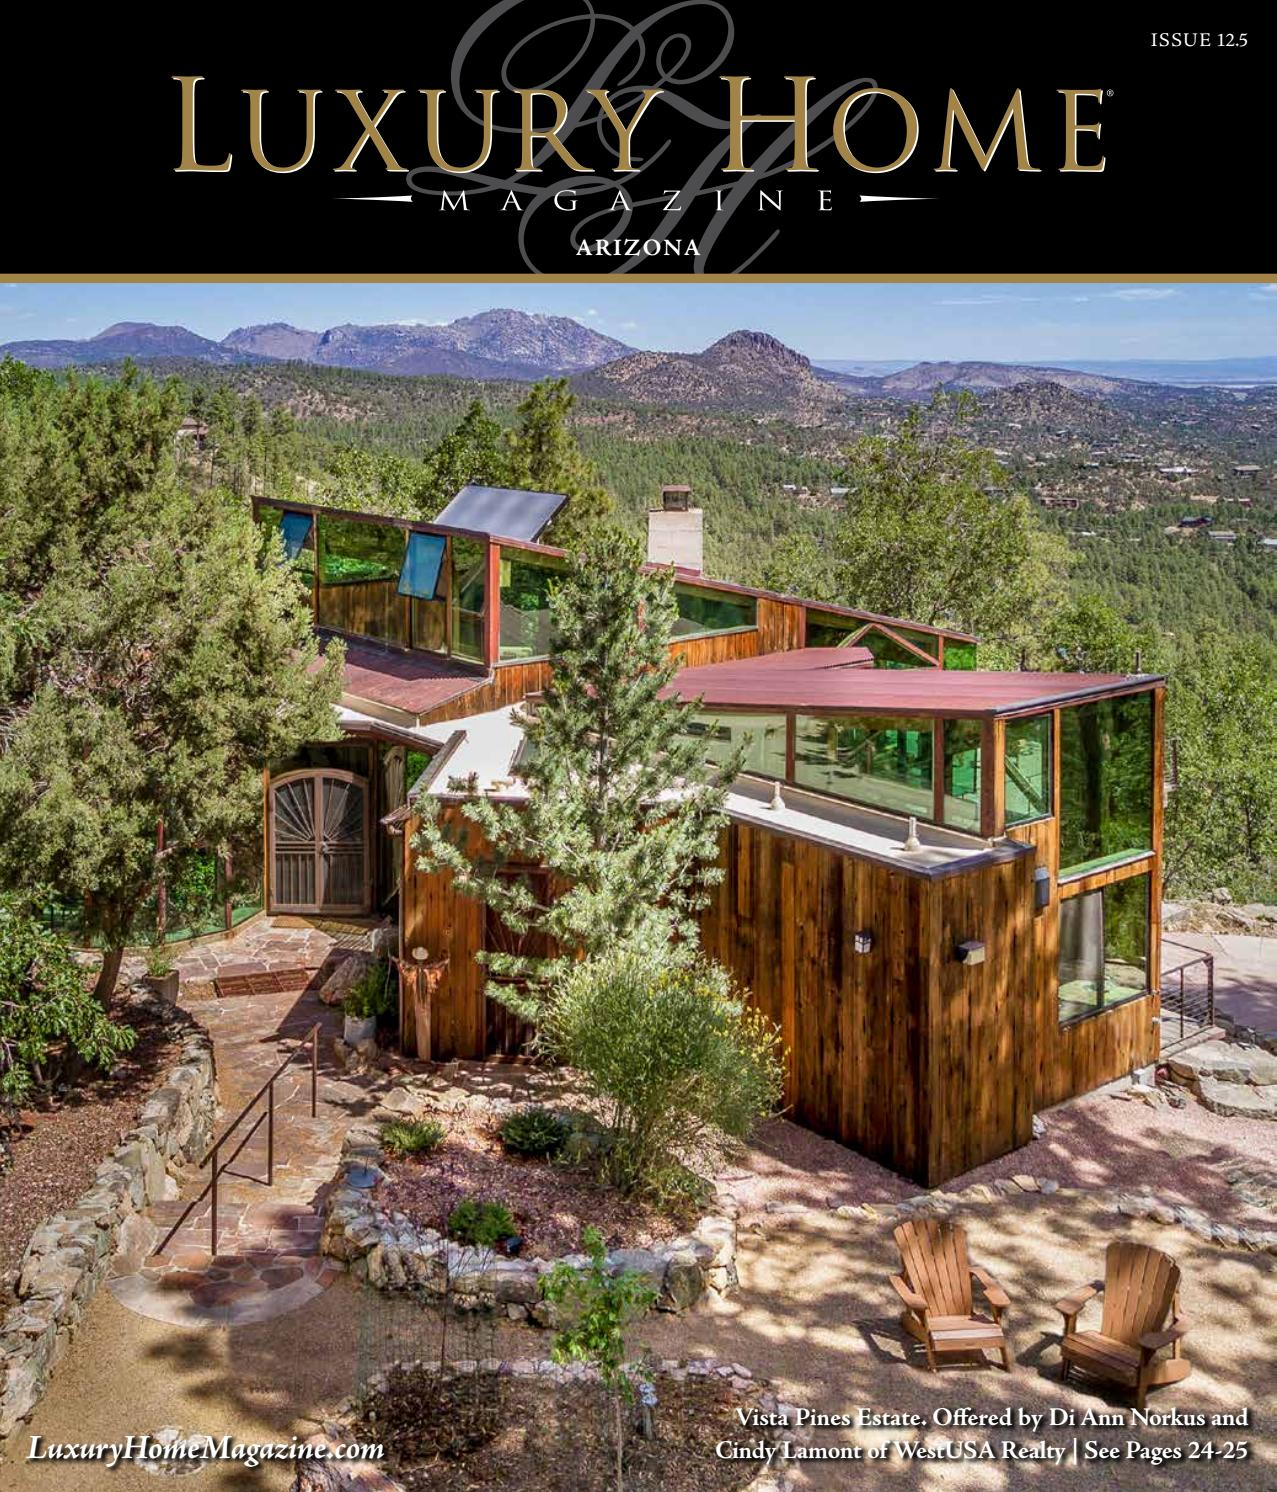 Luxury Home Magazine Arizona Issue 12.5 by Luxury Home Magazine - issuu